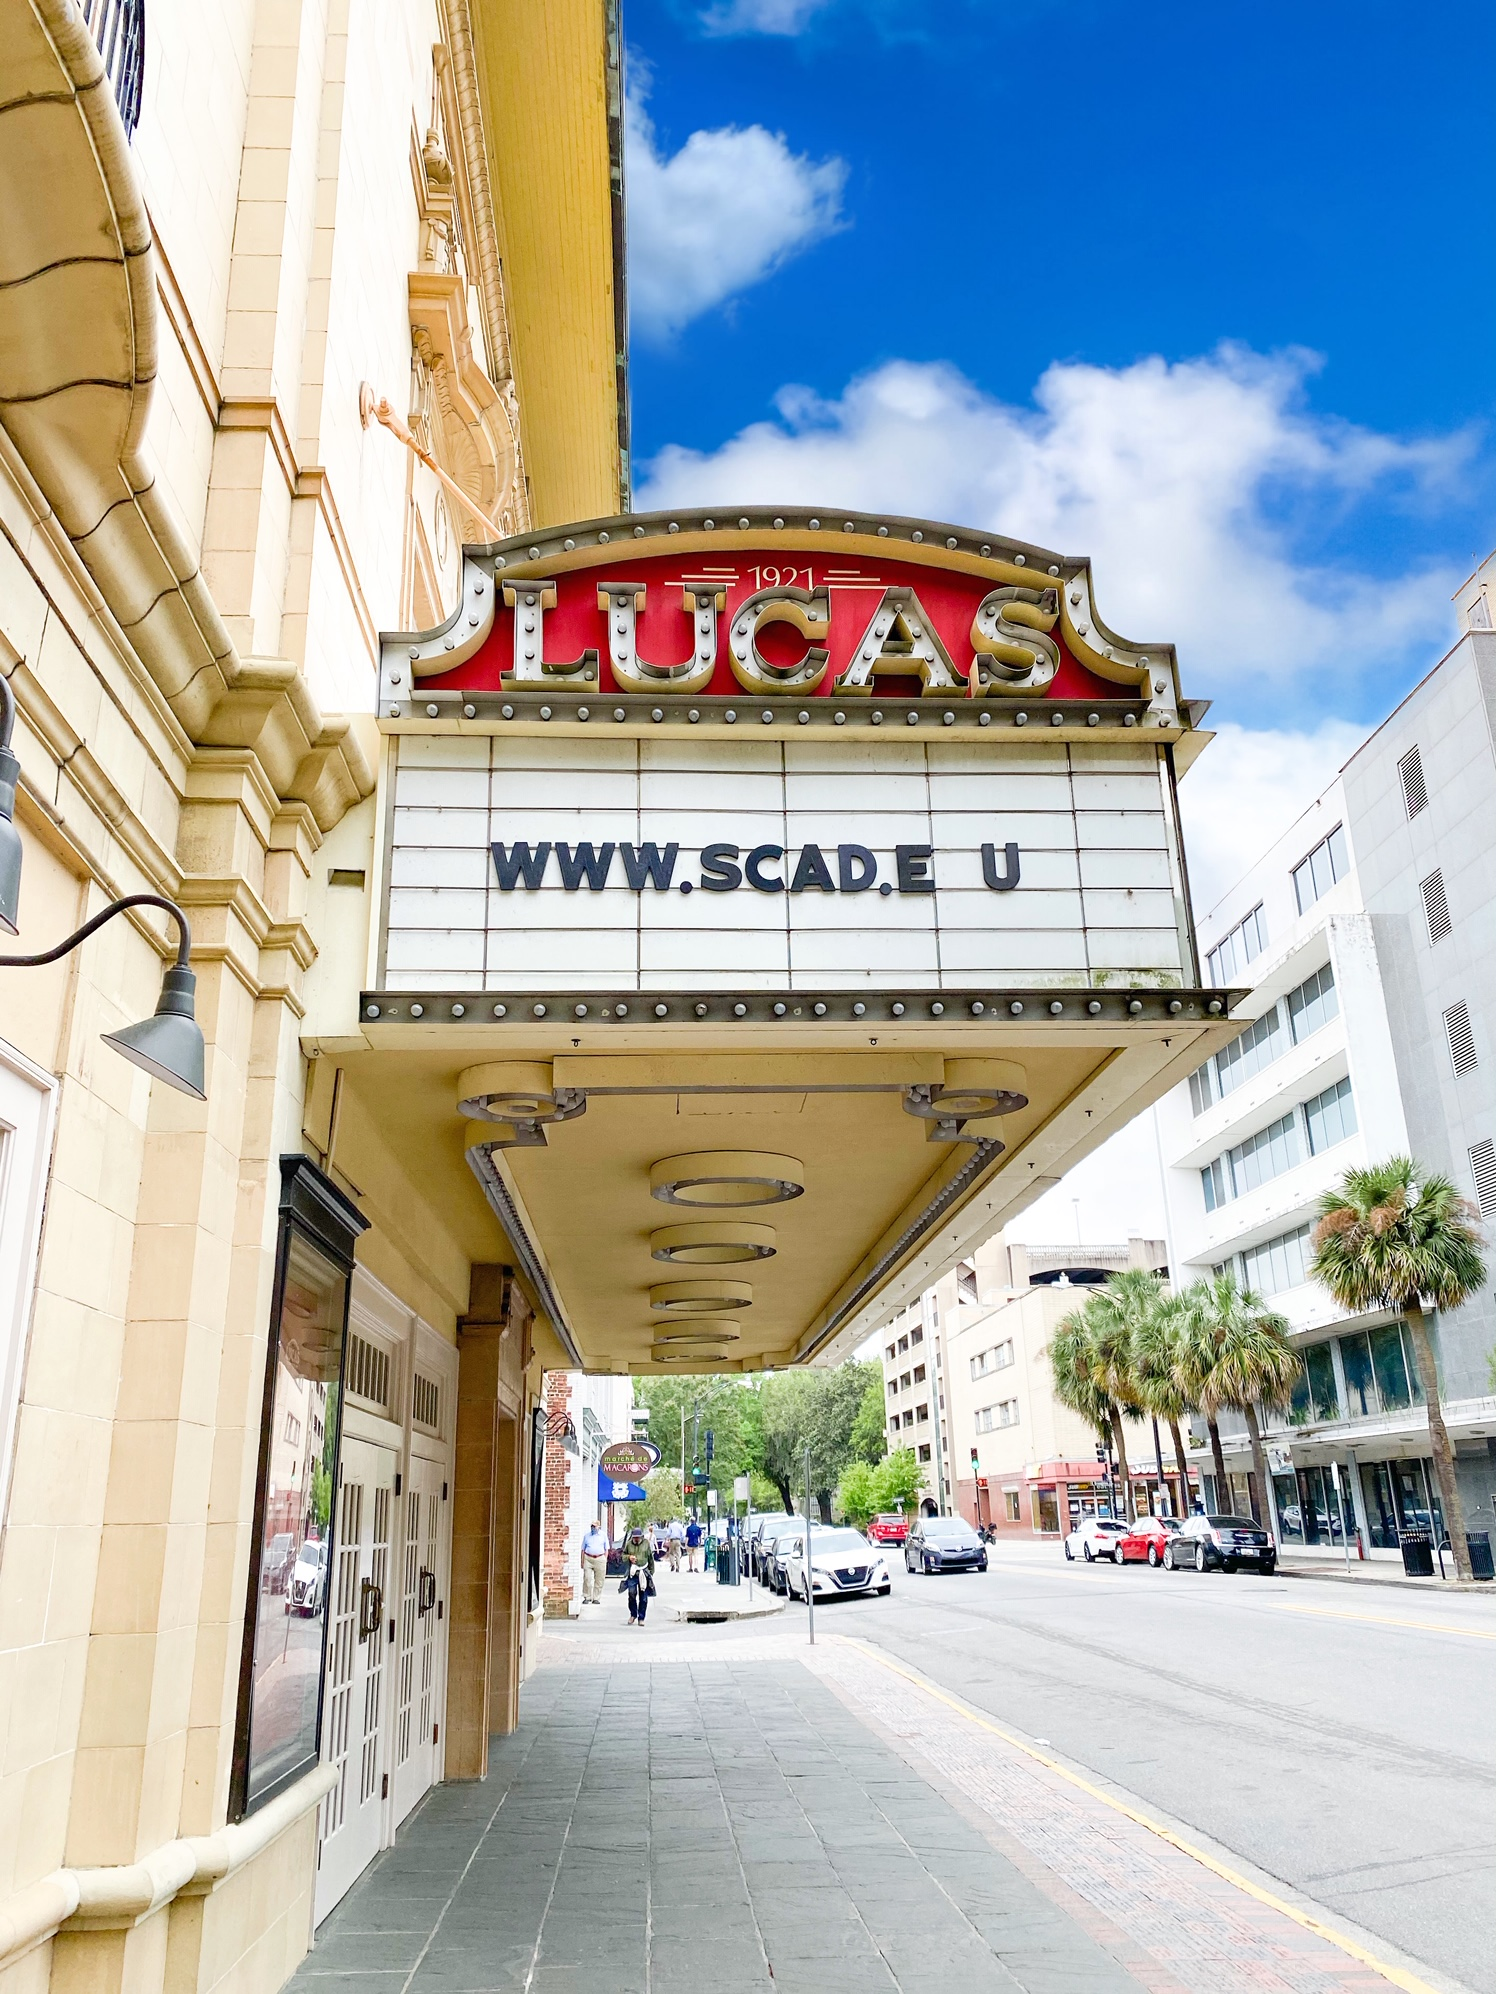 The exterior of a historic theater in Savannah Georgia. It has an antique marque out front that has the theater name 'Lucas' on it with a classic red back ground. The marque reads 'www.scad.eu'. The building itself has an Art Deco design and is a creamy color.